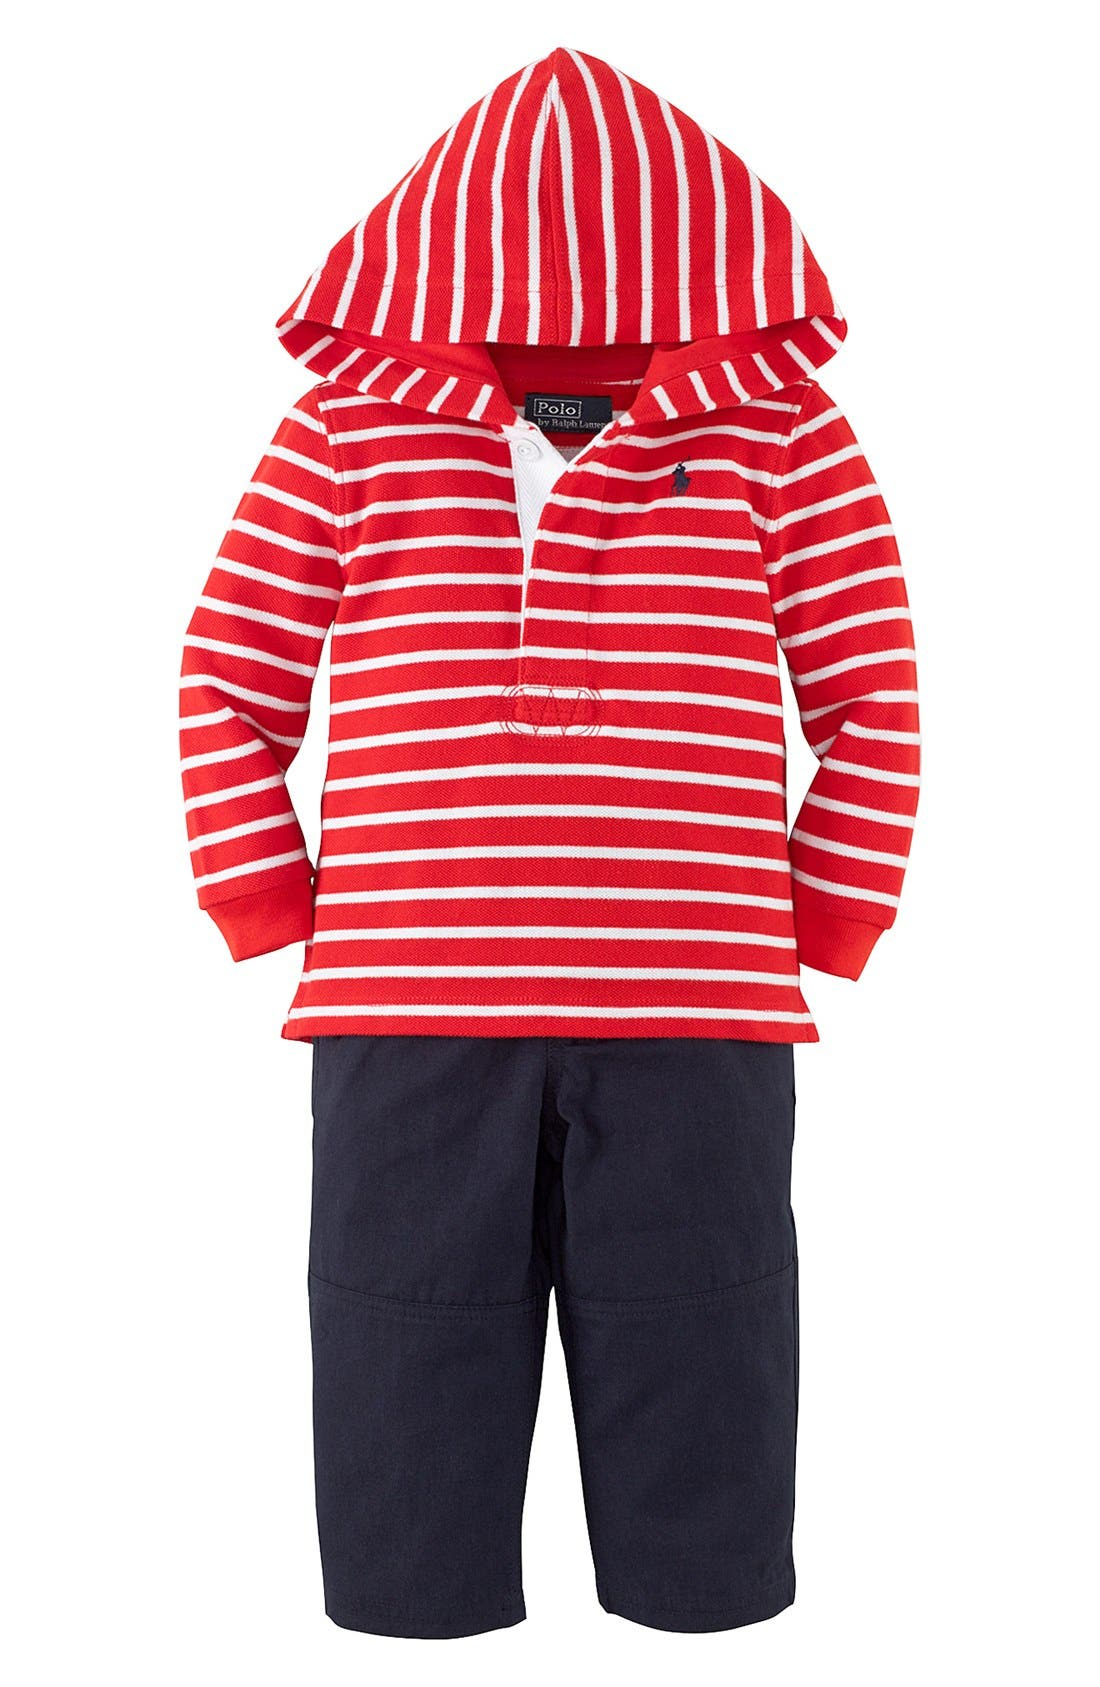 Alternate Image 1 Selected - Ralph Lauren Hooded T-Shirt & Woven Pants (Baby Boys)